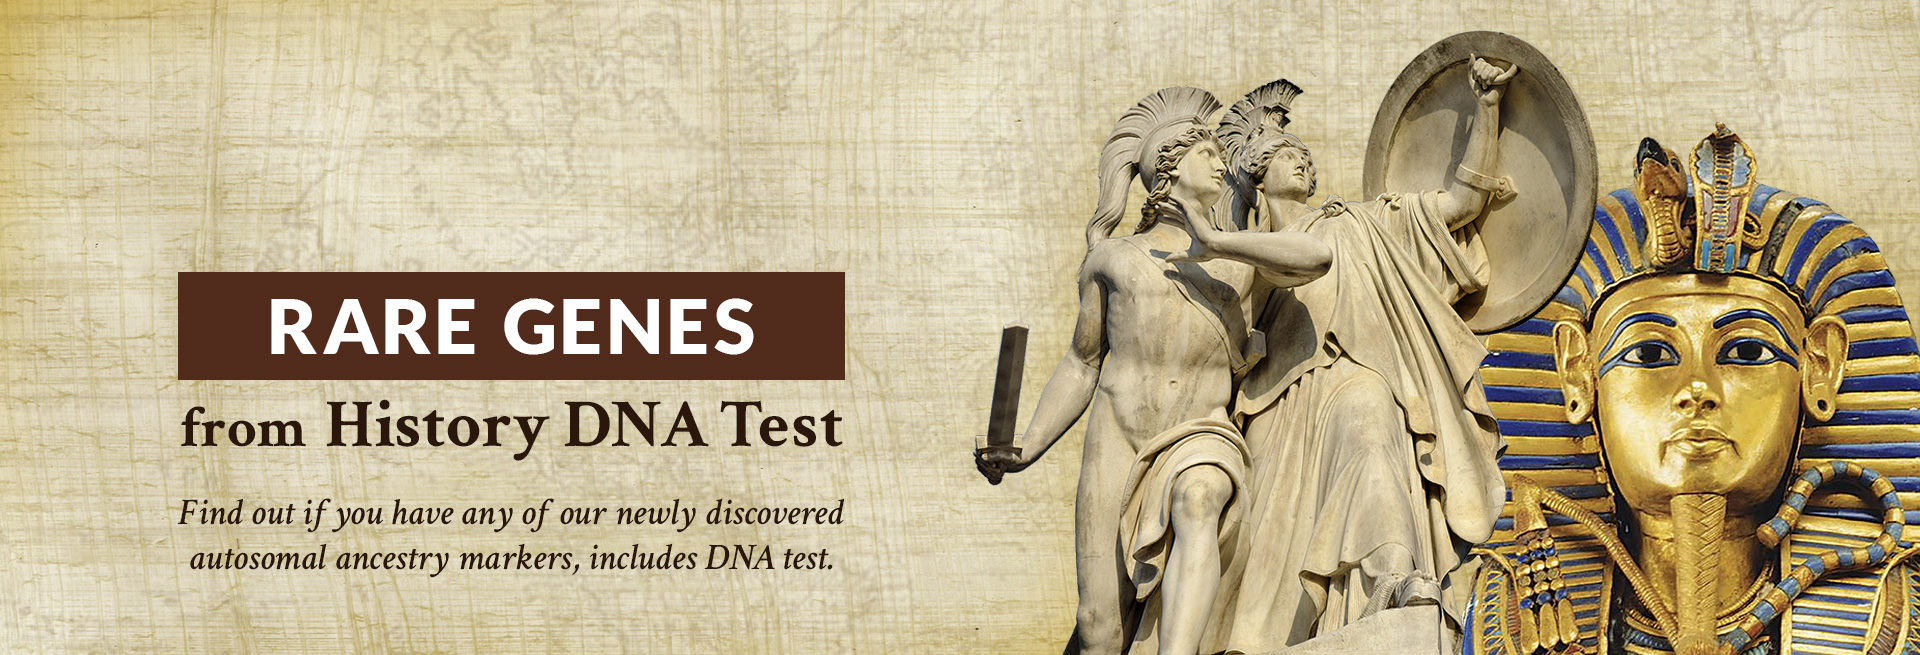 Rare Genes from History